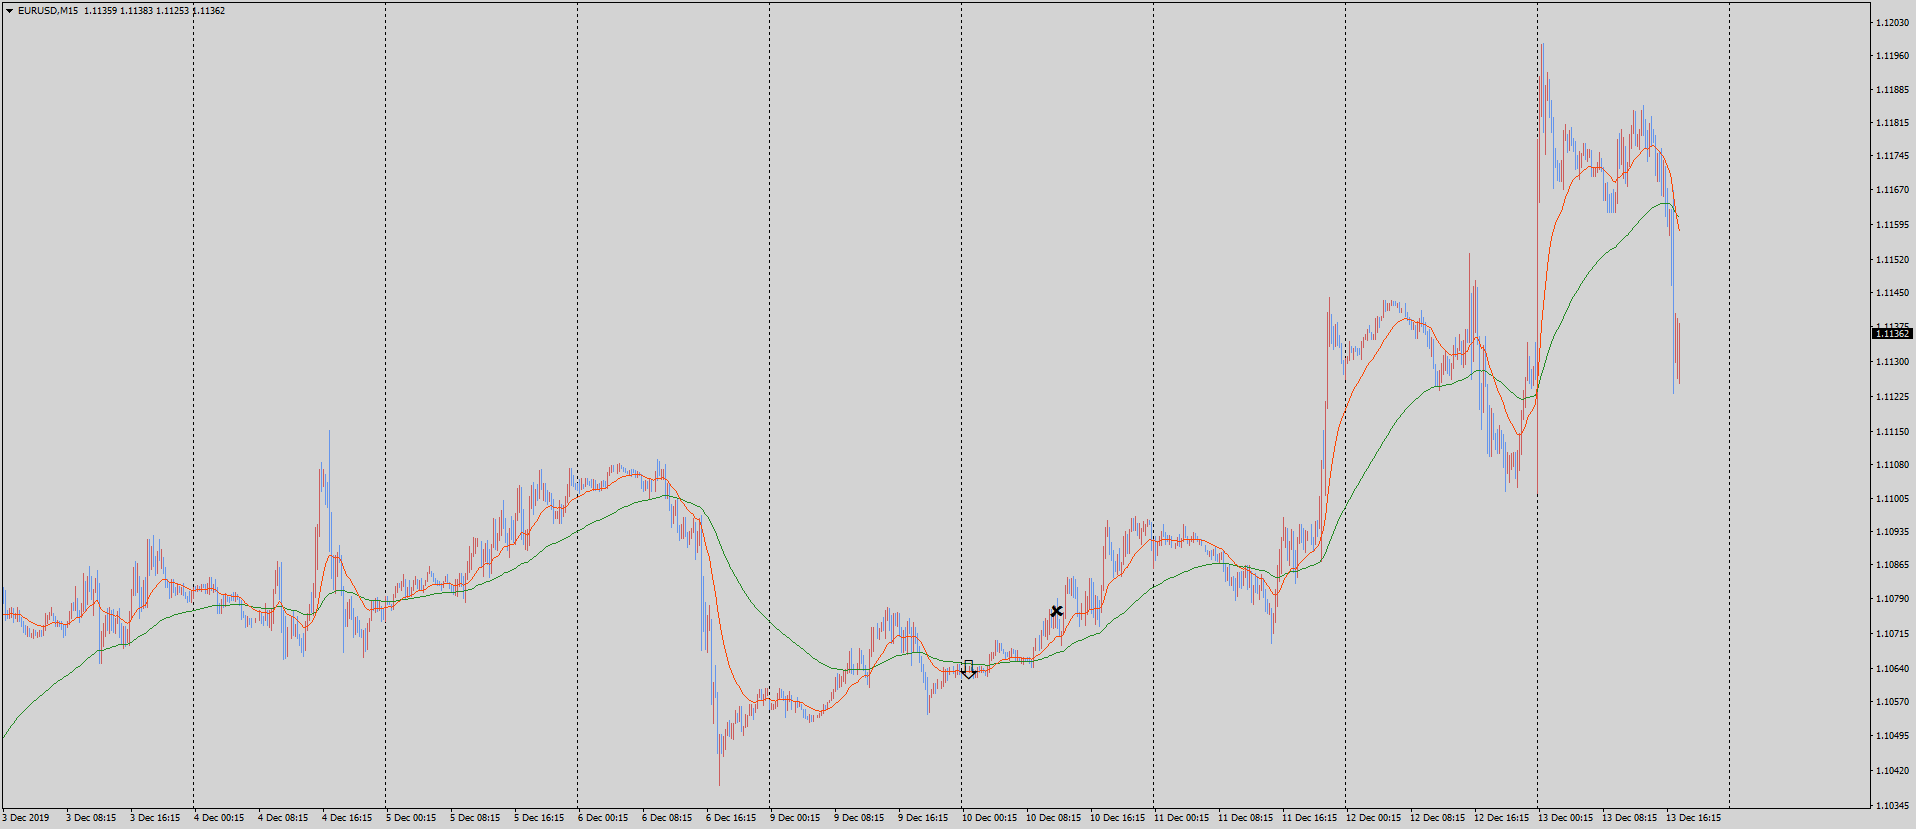 19-12-14-eurusd-m15-tradexfin-limited.png